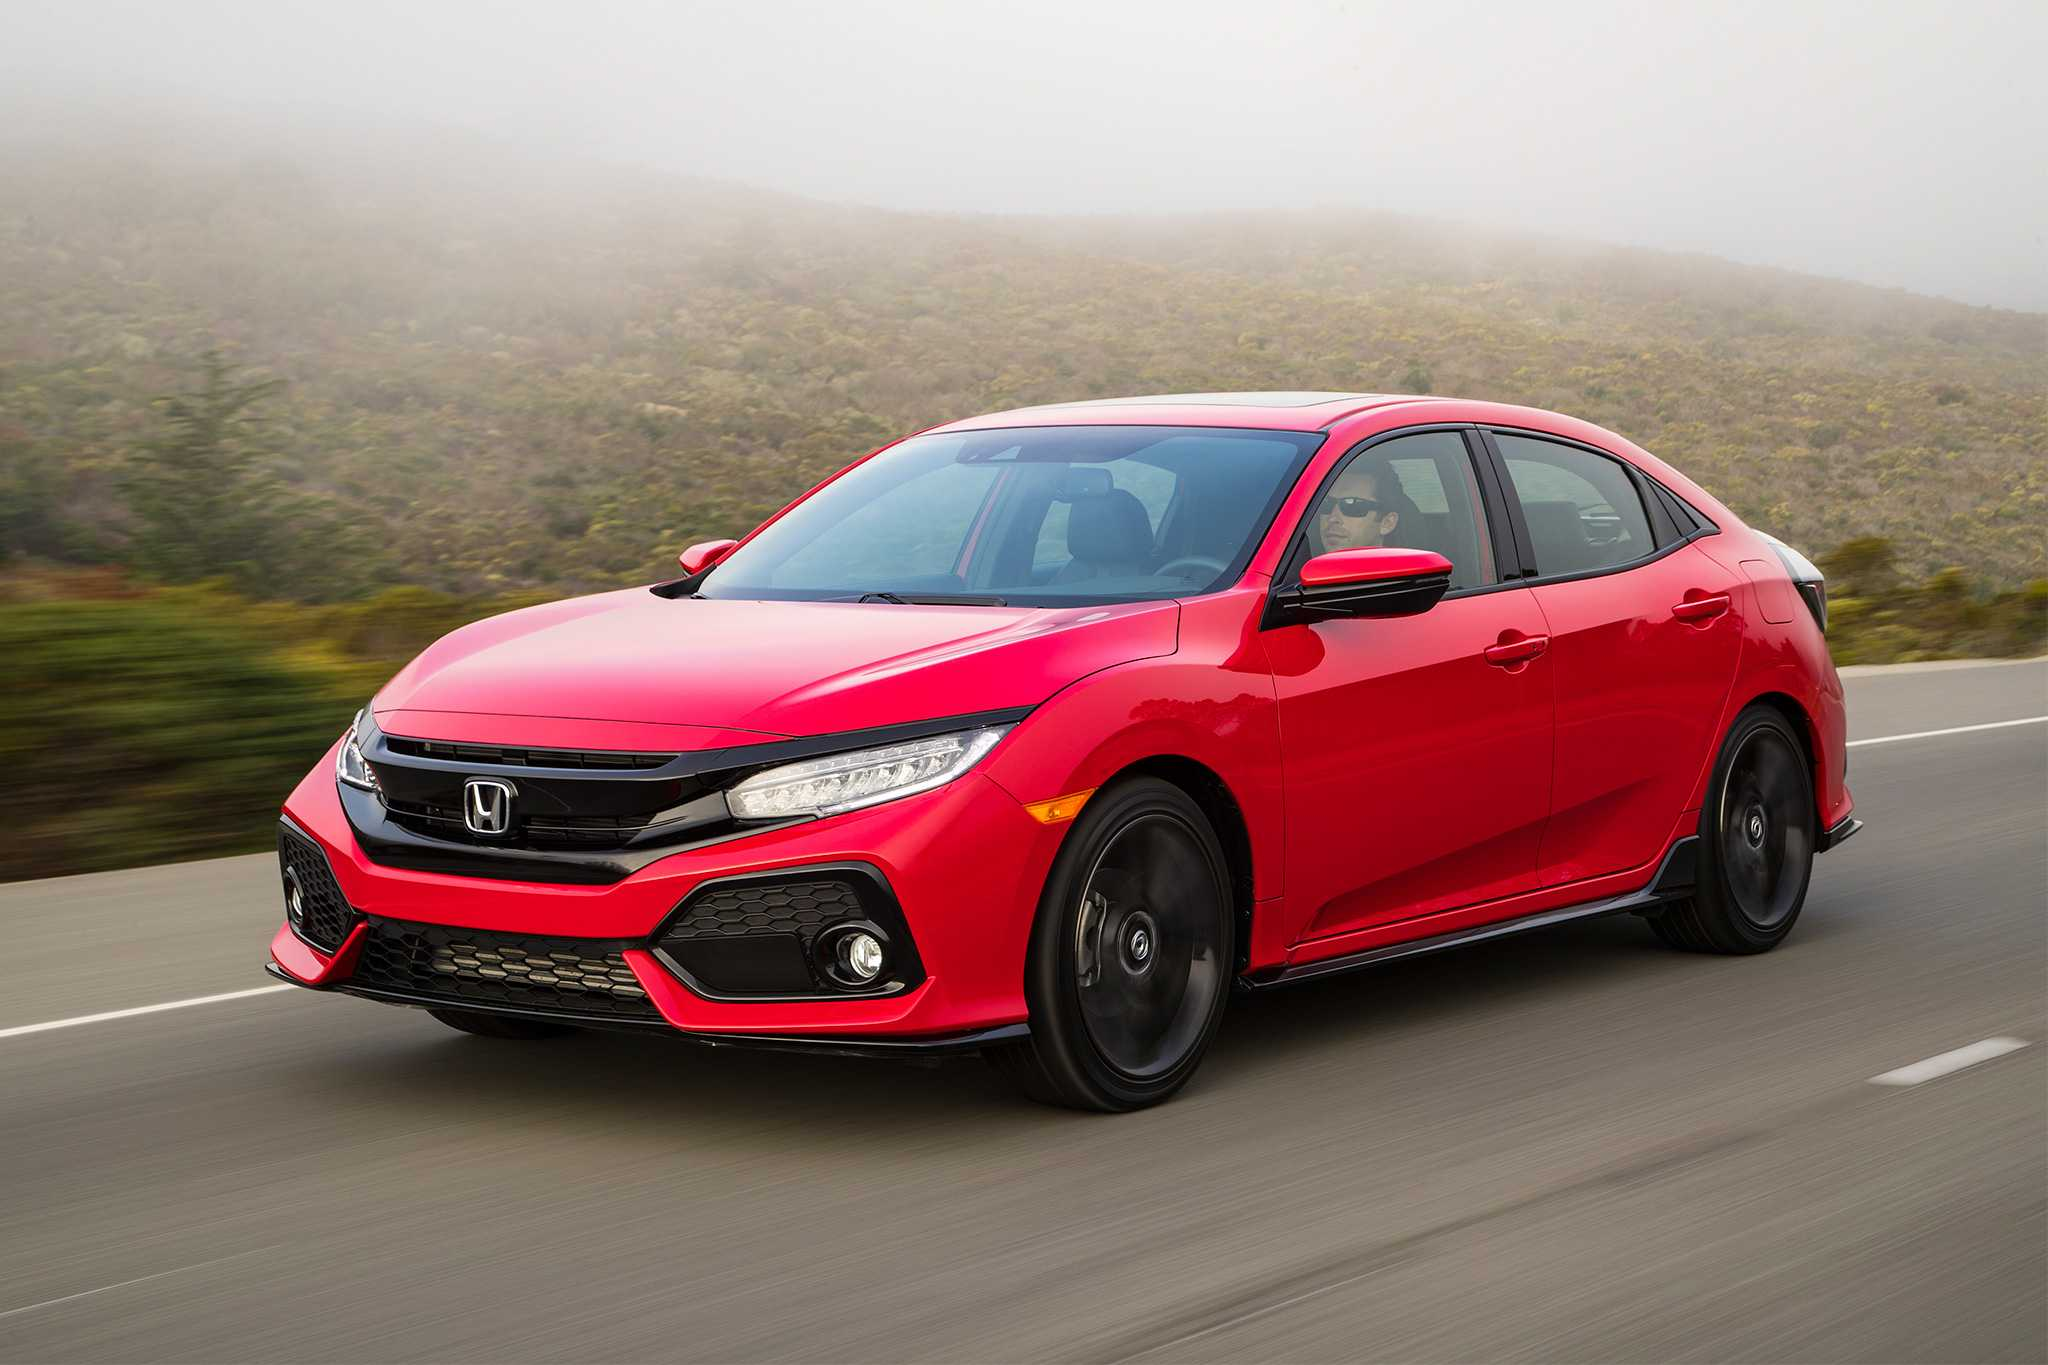 2017 Honda Civic Hatchback Base Model Priced at $20,535